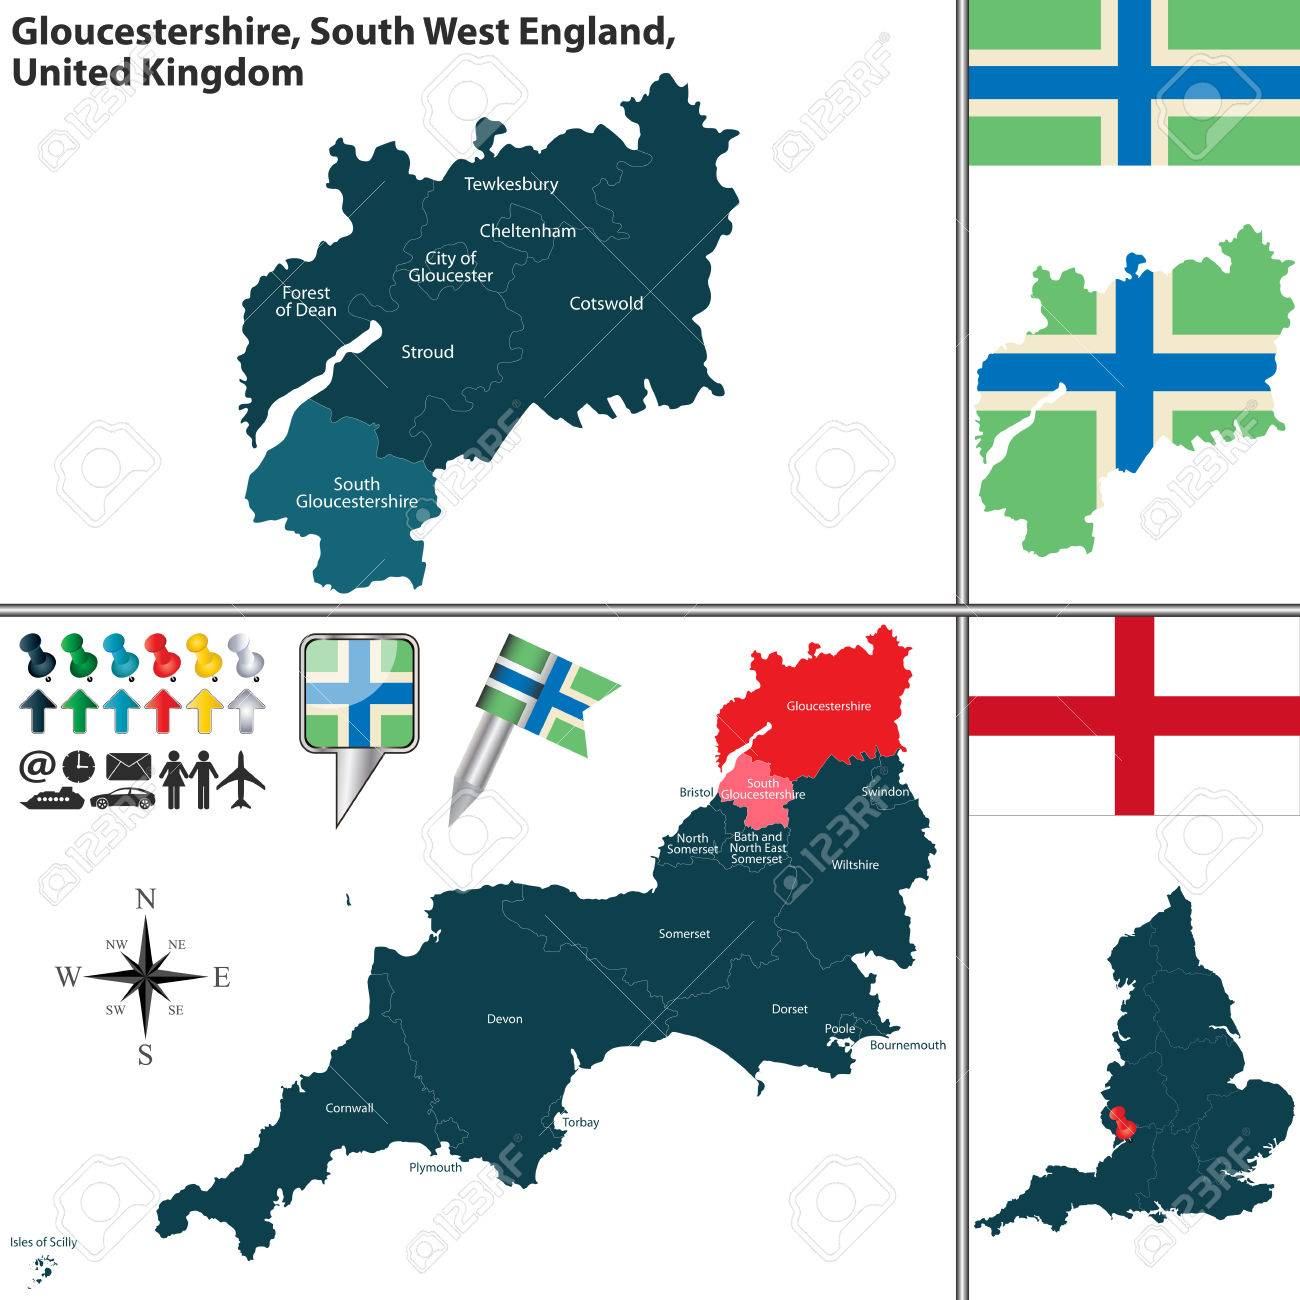 Map Of England Gloucestershire.Map Of Gloucestershire In South West England United Kingdom